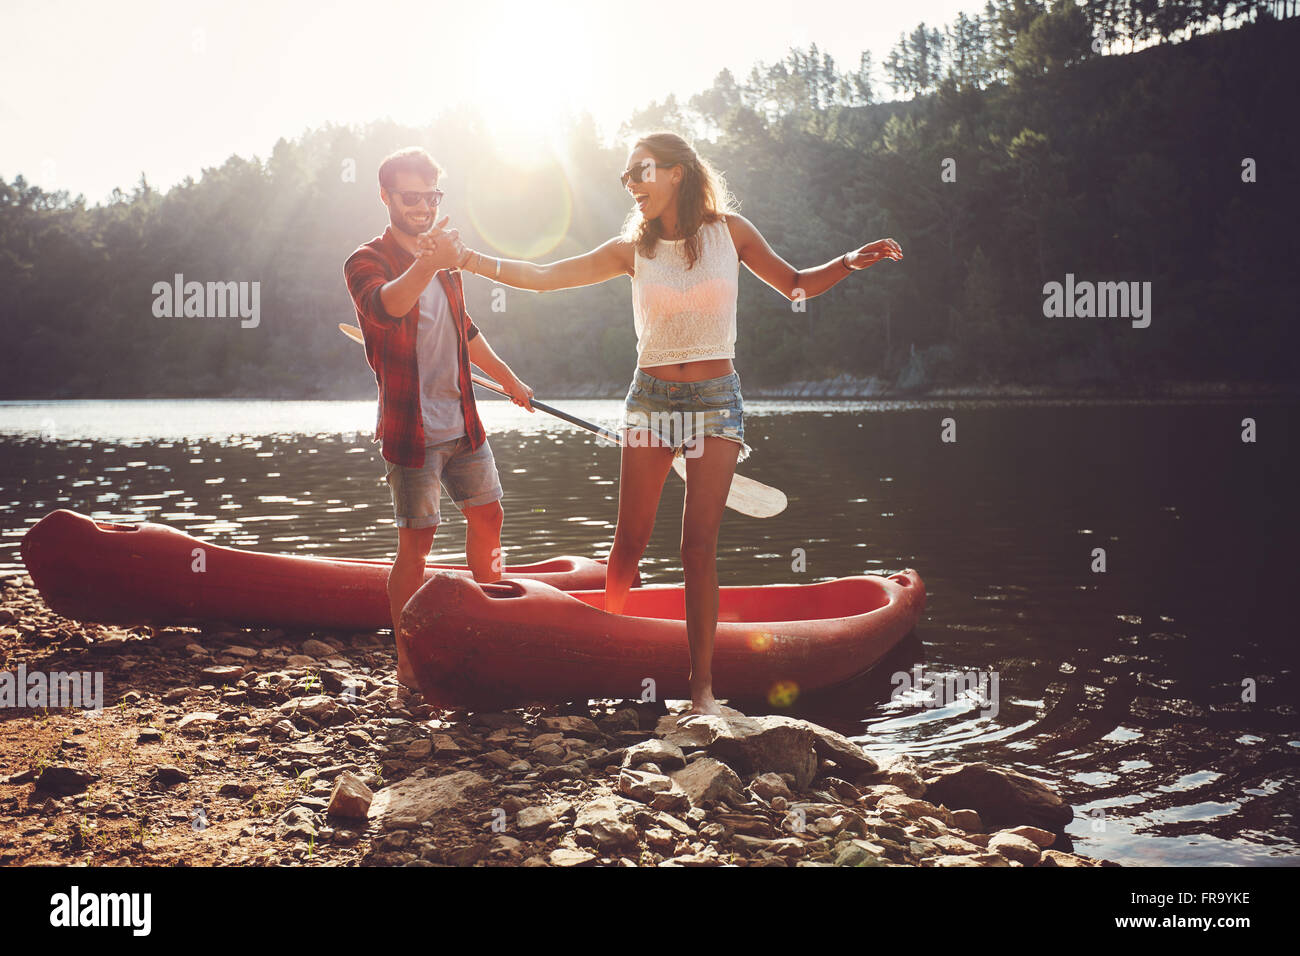 Young man helping woman to step out of a kayak. Couple after kayaking in the lake on a sunny day. - Stock Image